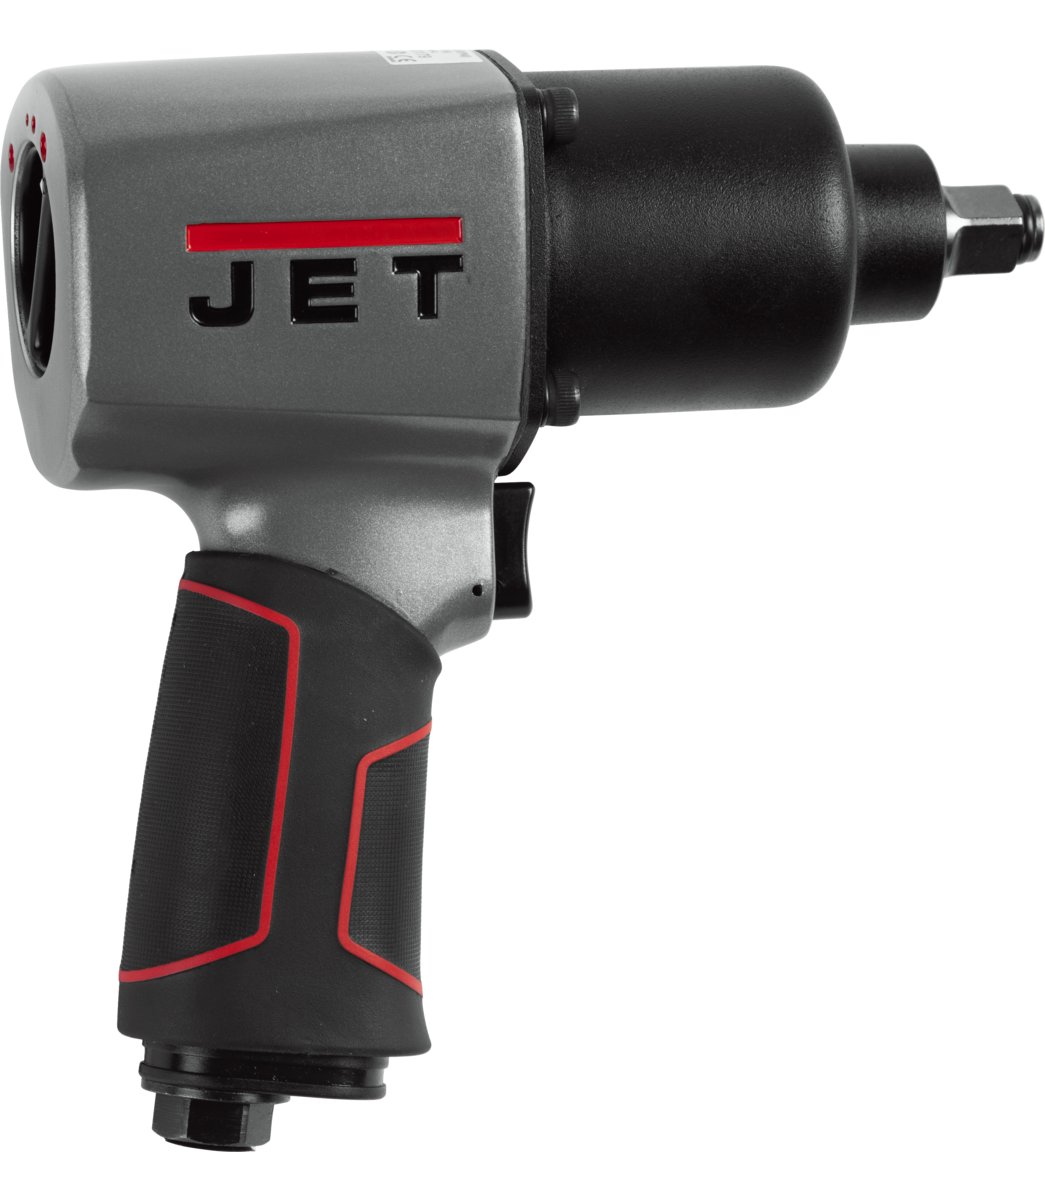 "JAT-104 1/2"" IMPCT WRNCH 900 ft-lbs"